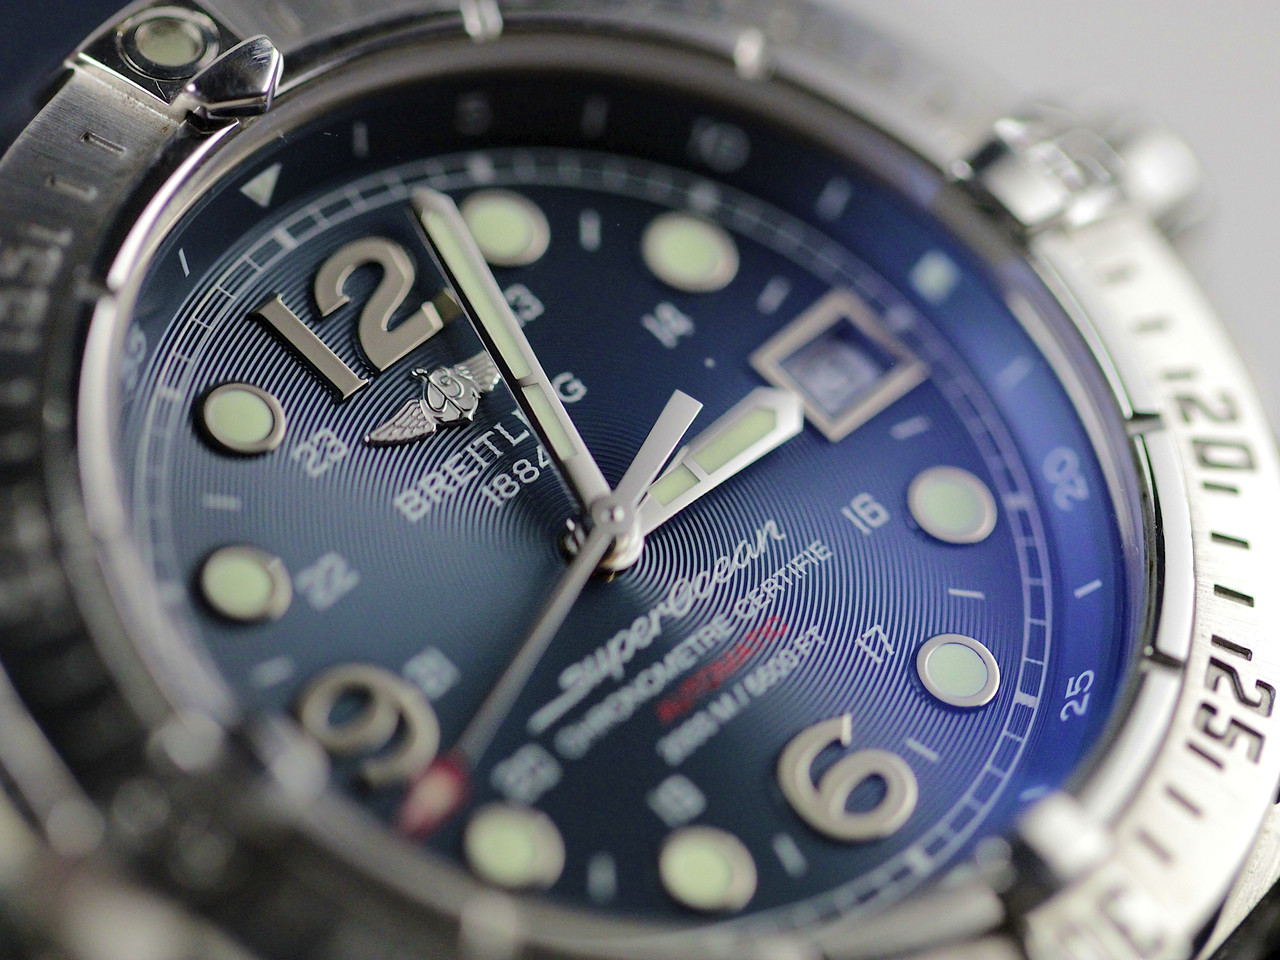 DIal - Pre-Owned Breitling Watch - Superocean Steelfish Blue A17390 - www.Legendoftime.com - Chicago Watch Center